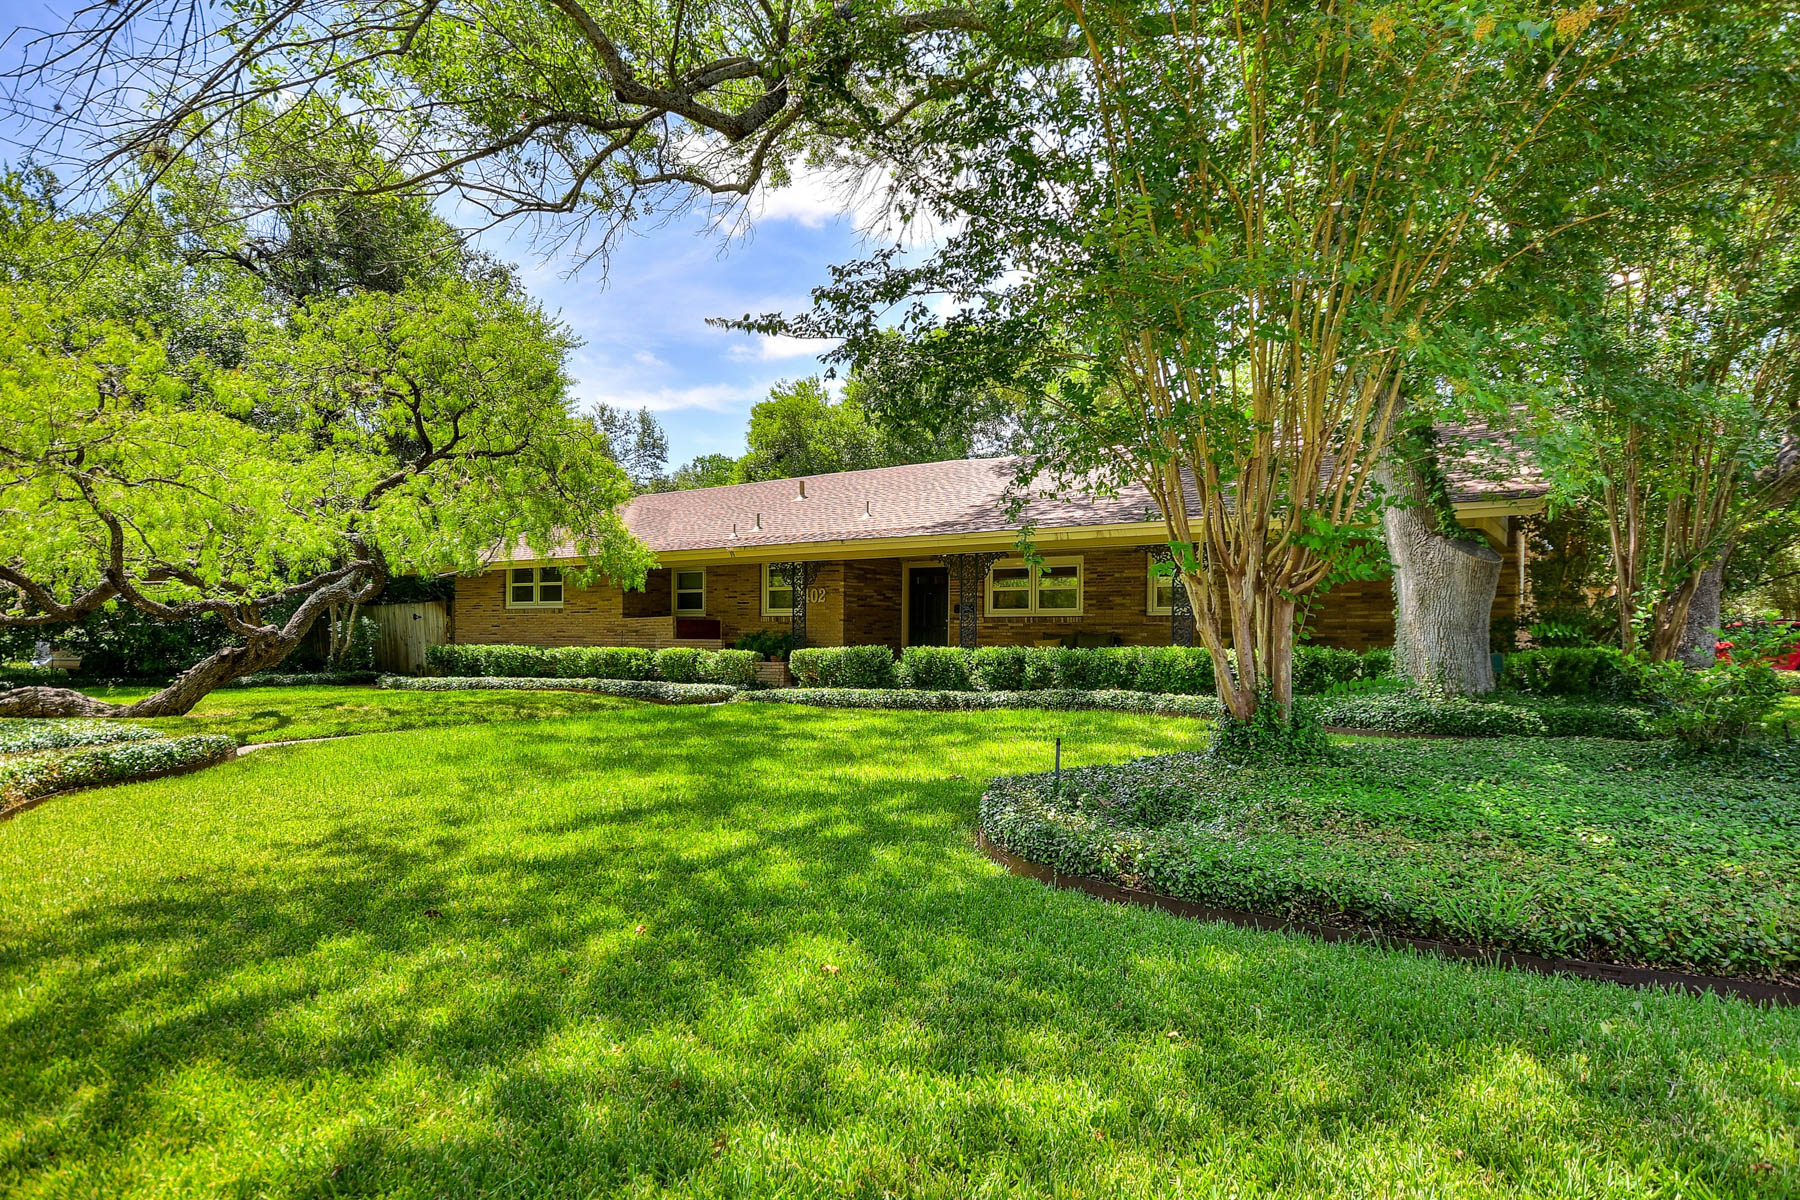 Additional photo for property listing at Amazing 1-Story Brick Home in Park-Like Setting 402 Cave Ln San Antonio, Texas 78209 Estados Unidos